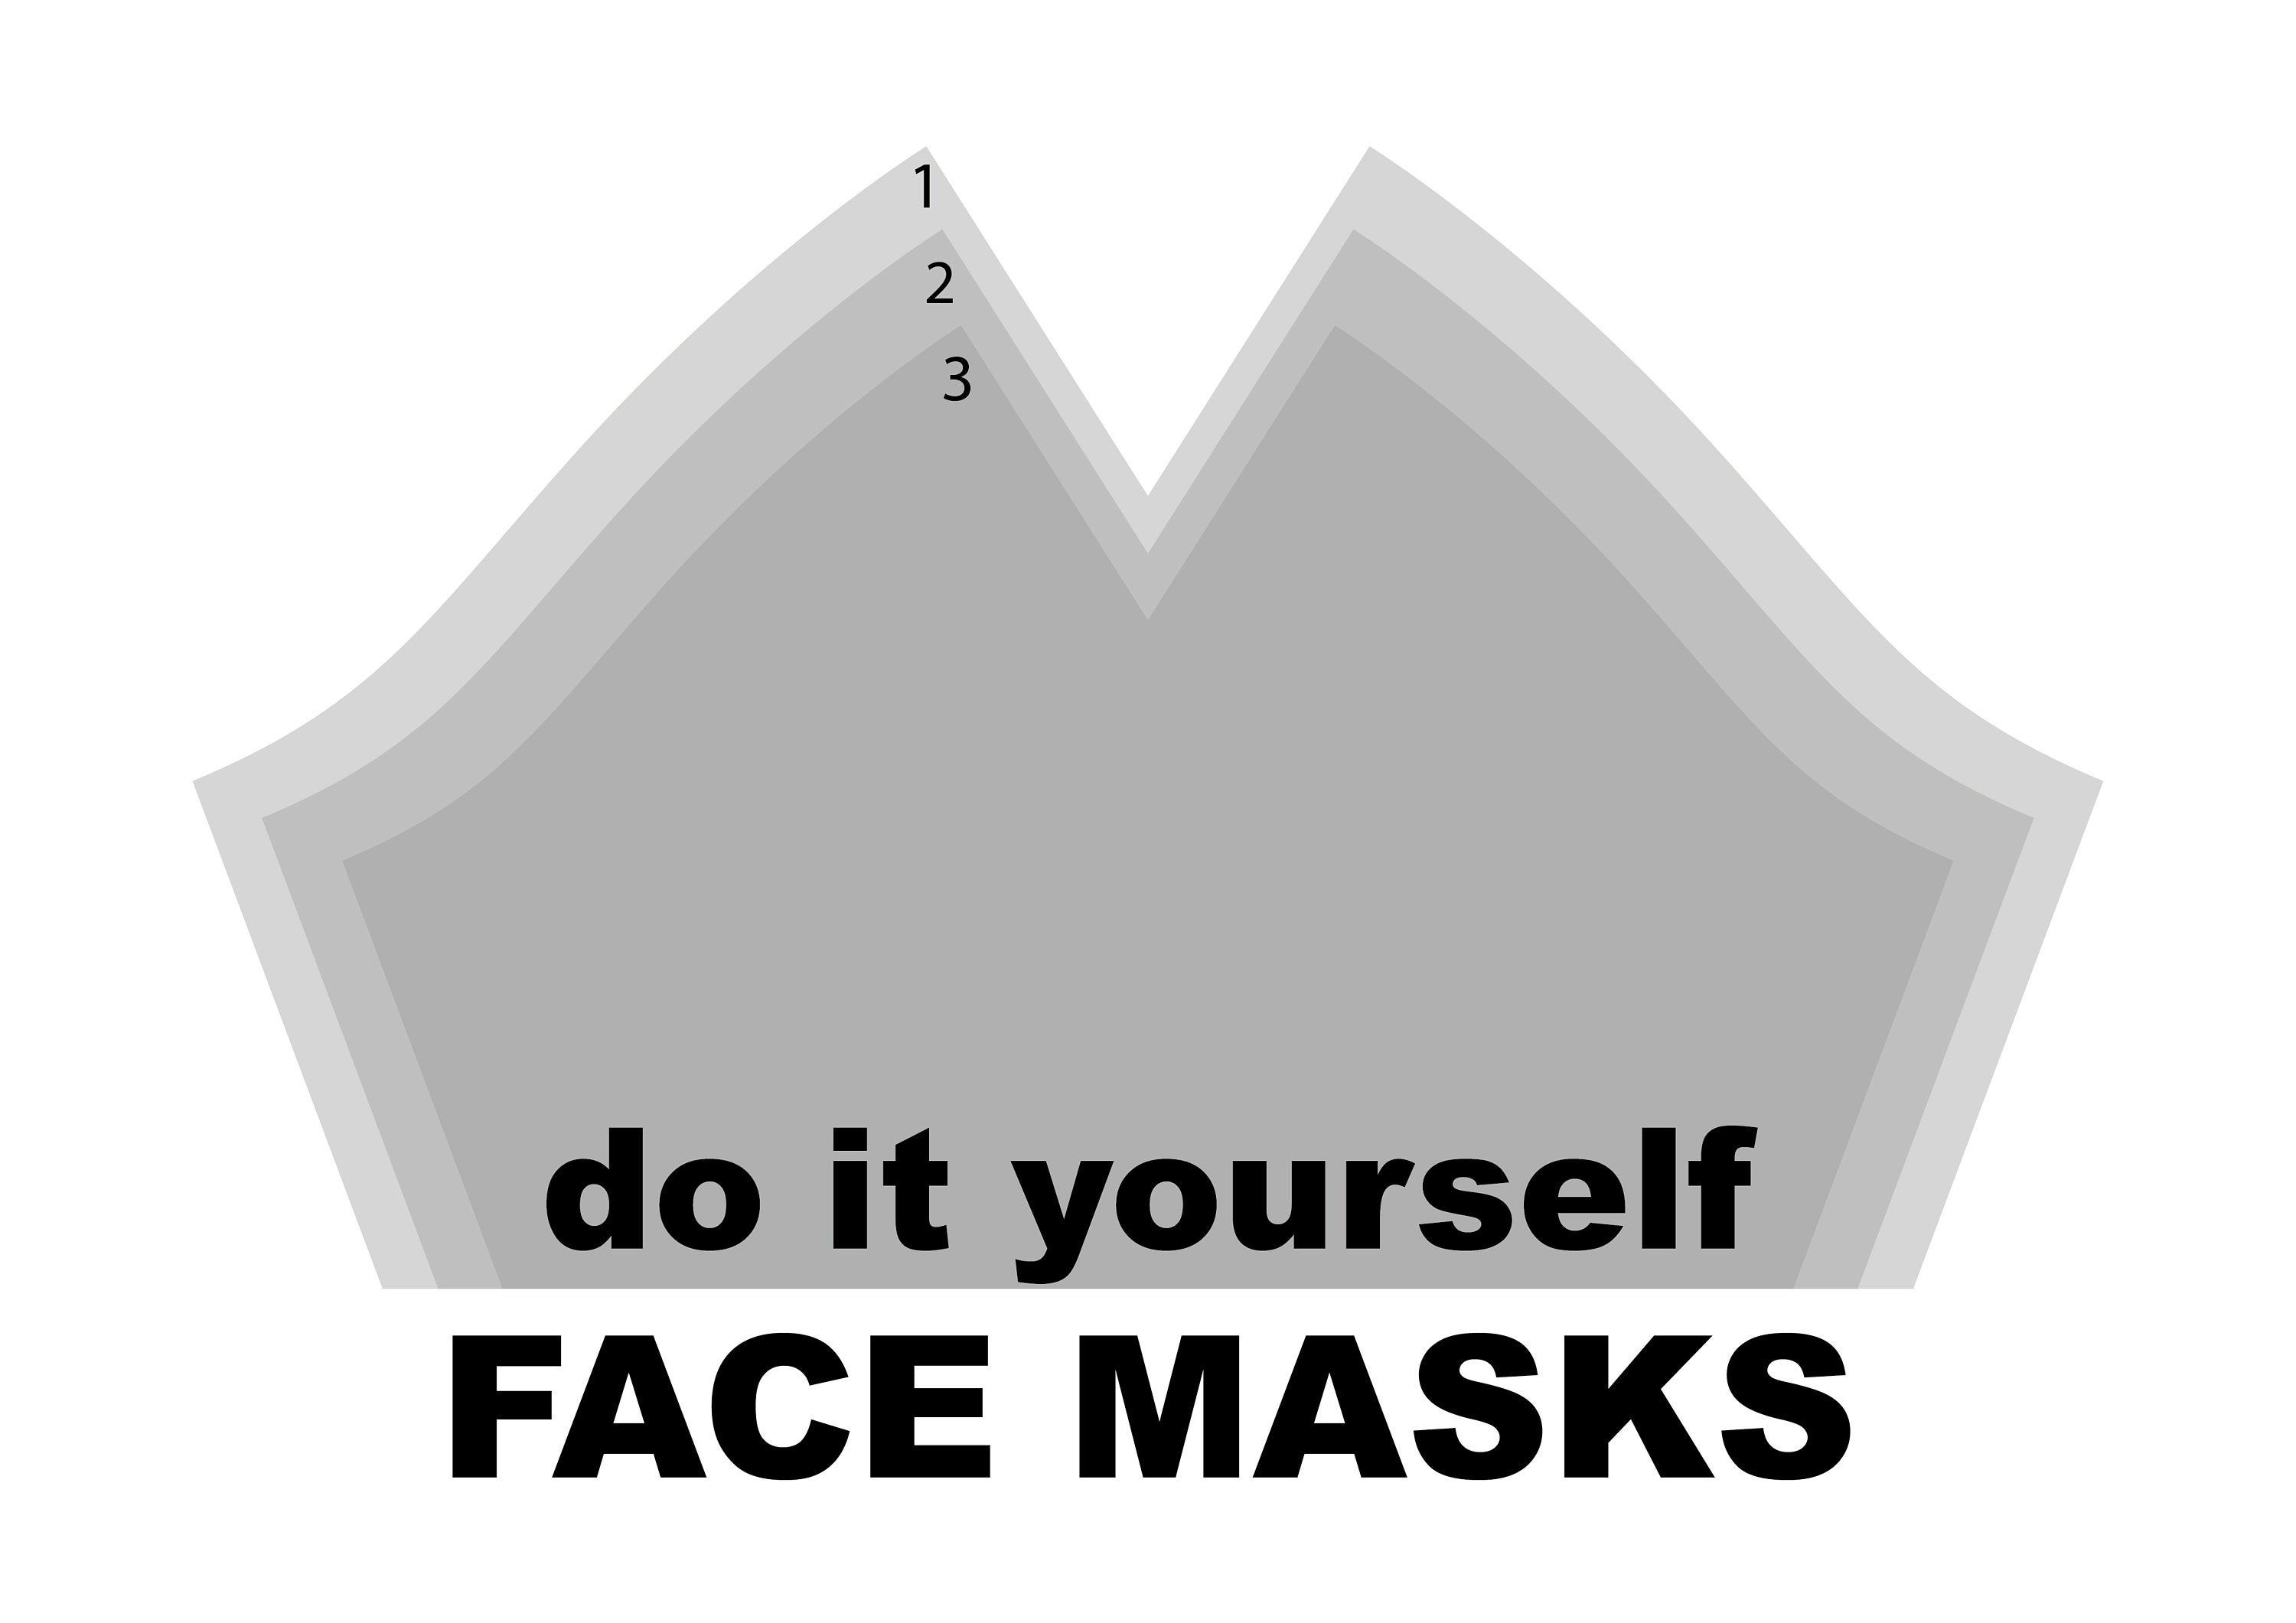 VECTOR pattern FACE MASK, do it yourself, ai, eps, pdf